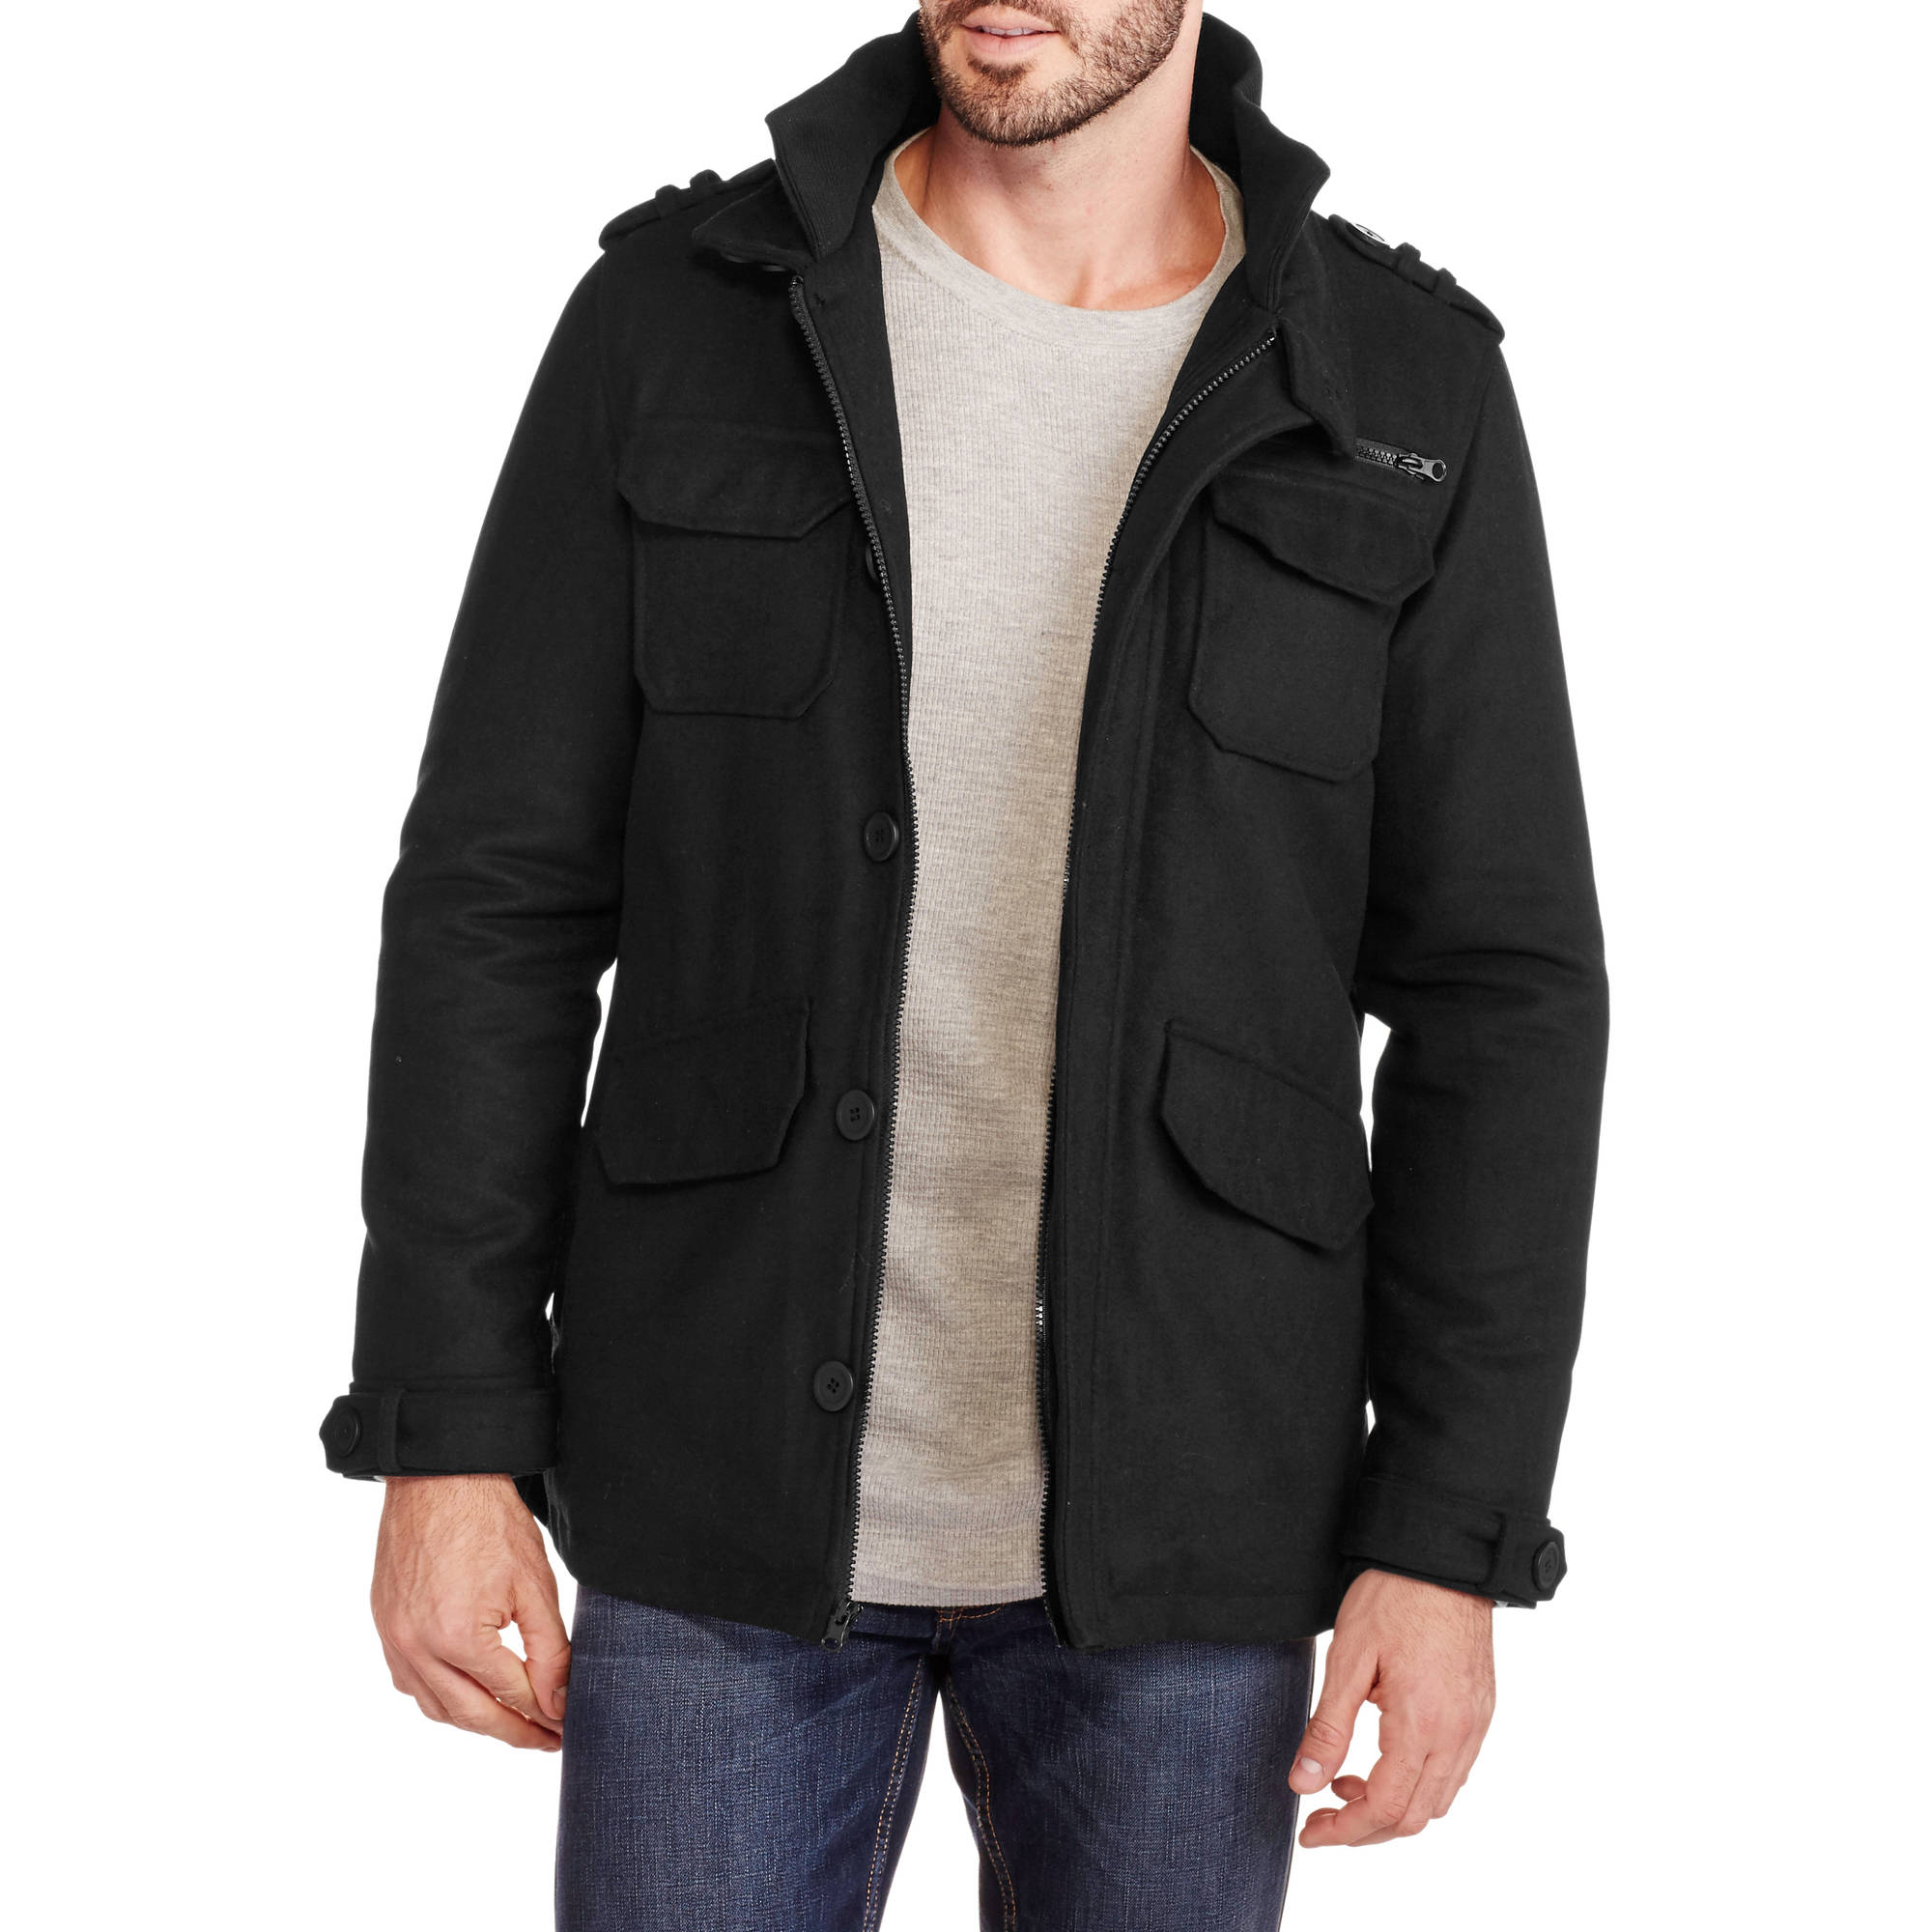 Men's Faux Wool Jacket